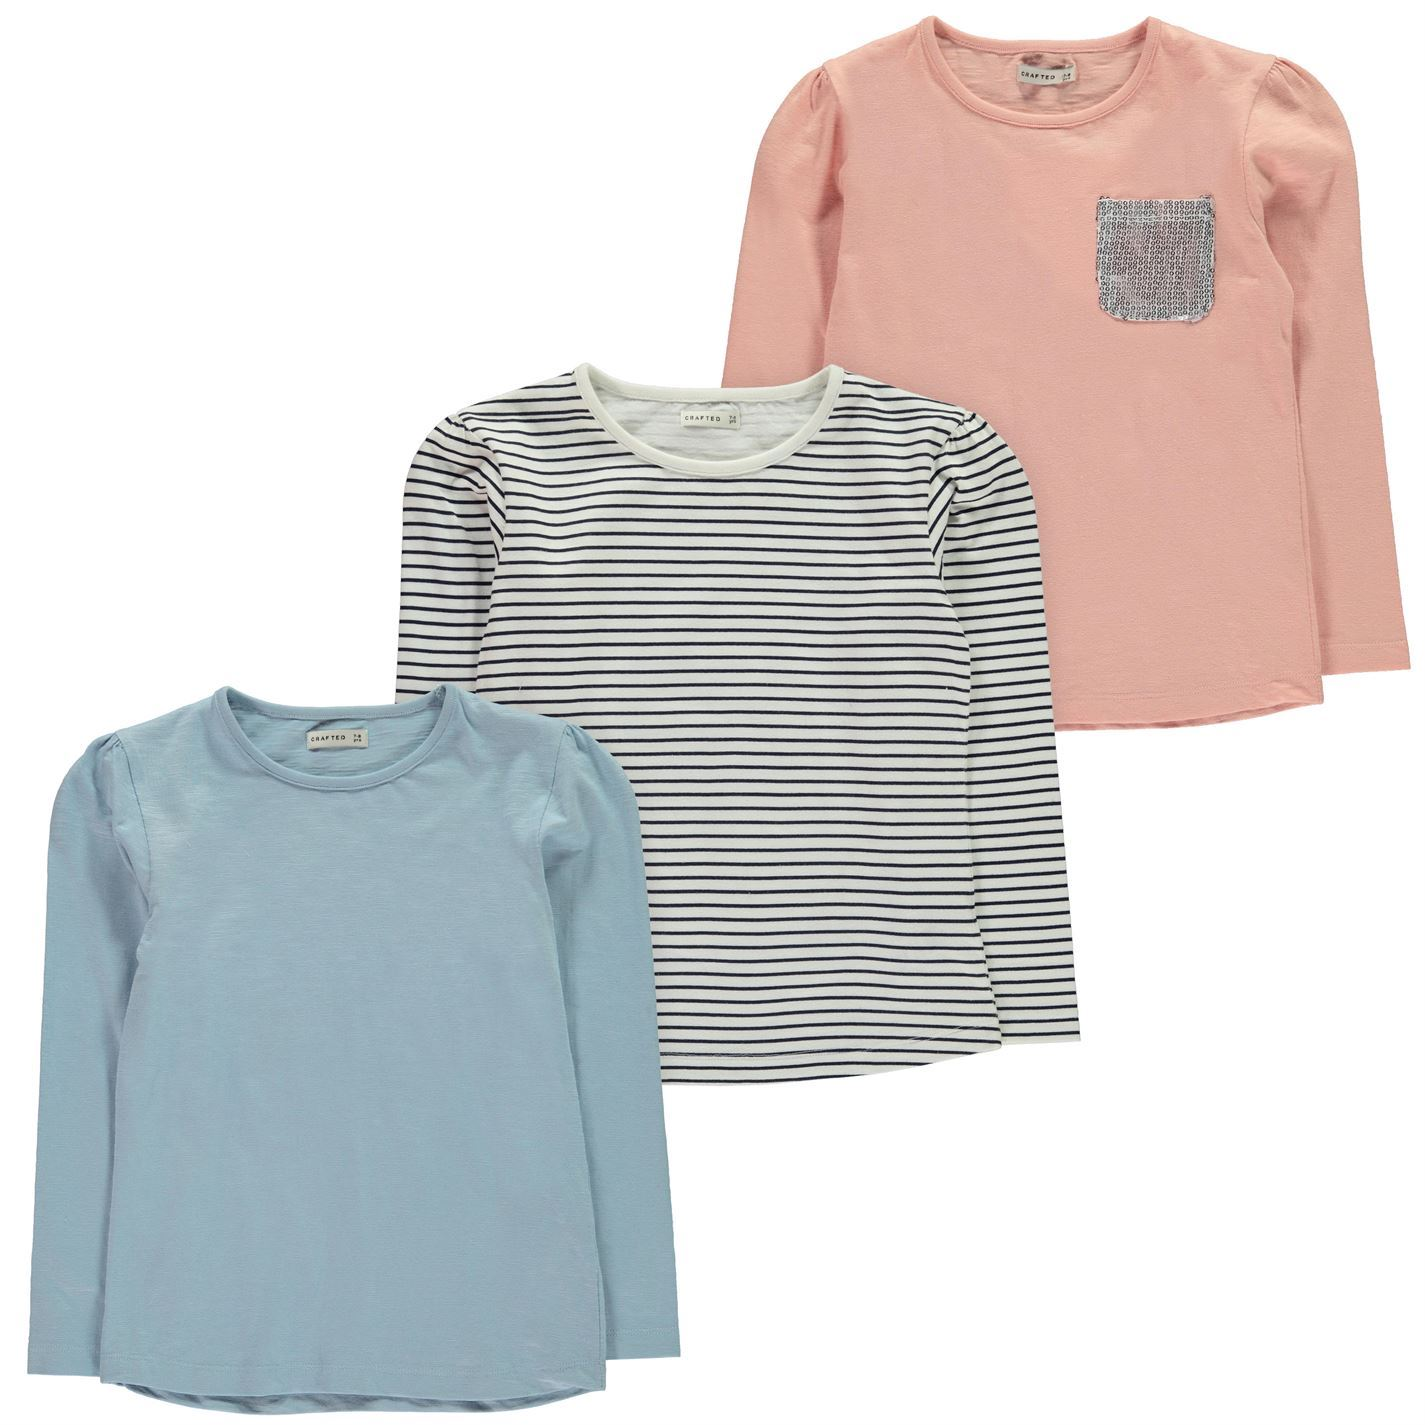 53f5fb314 Crafted Kids Girls Pack of 3 T Shirt Infant Long Sleeve Tee Top Round ...